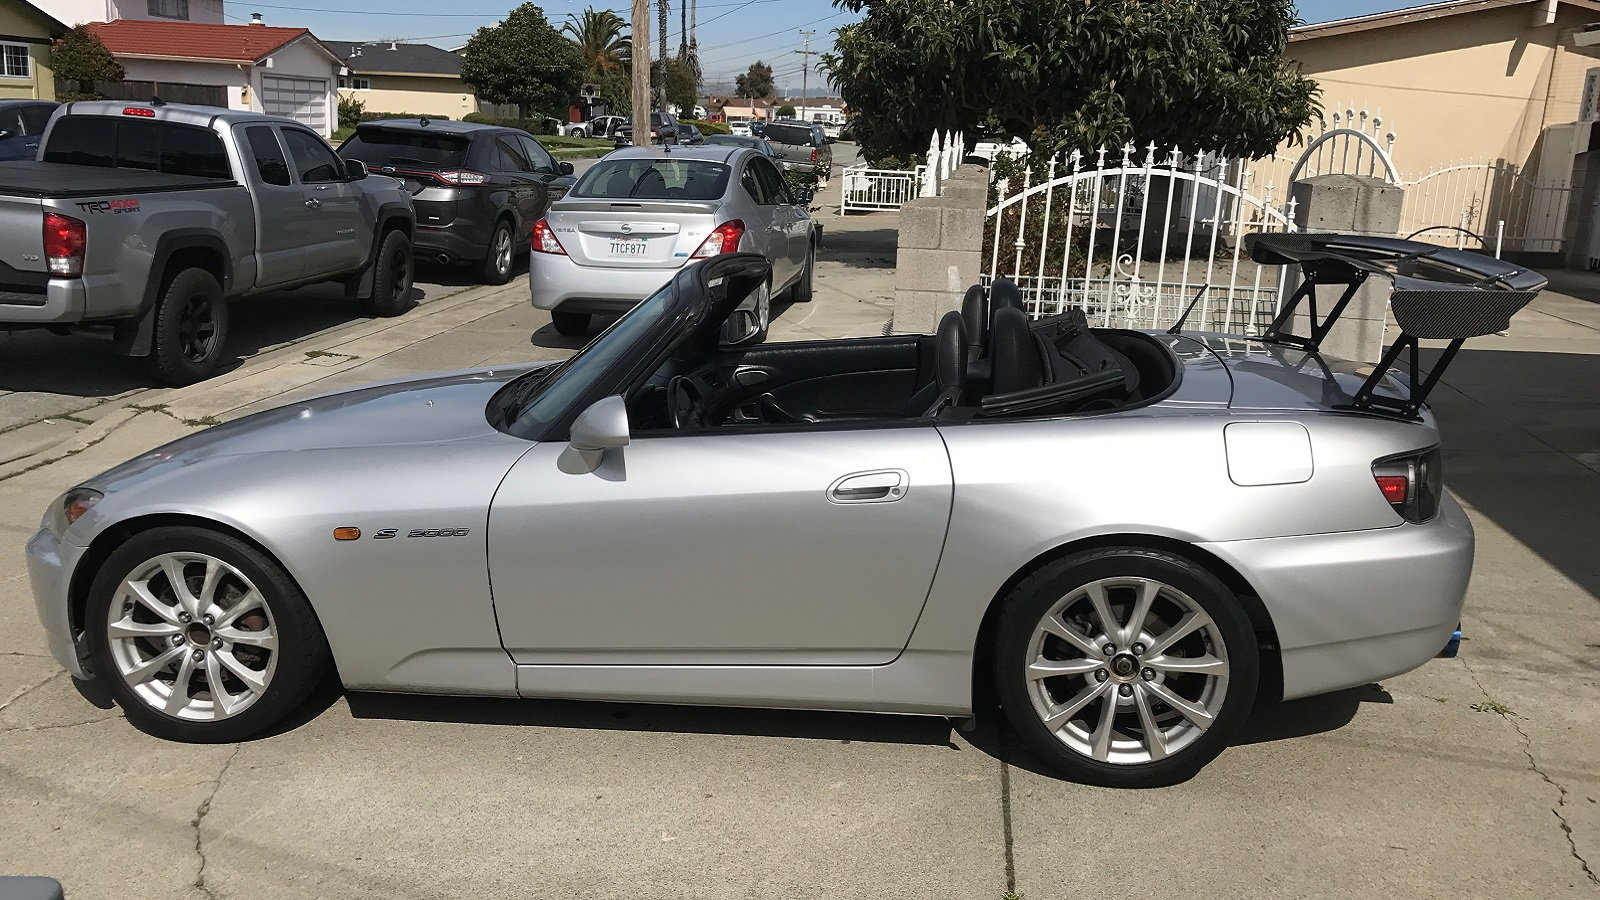 AP2 S2000 Built to Be a Weapon on Track